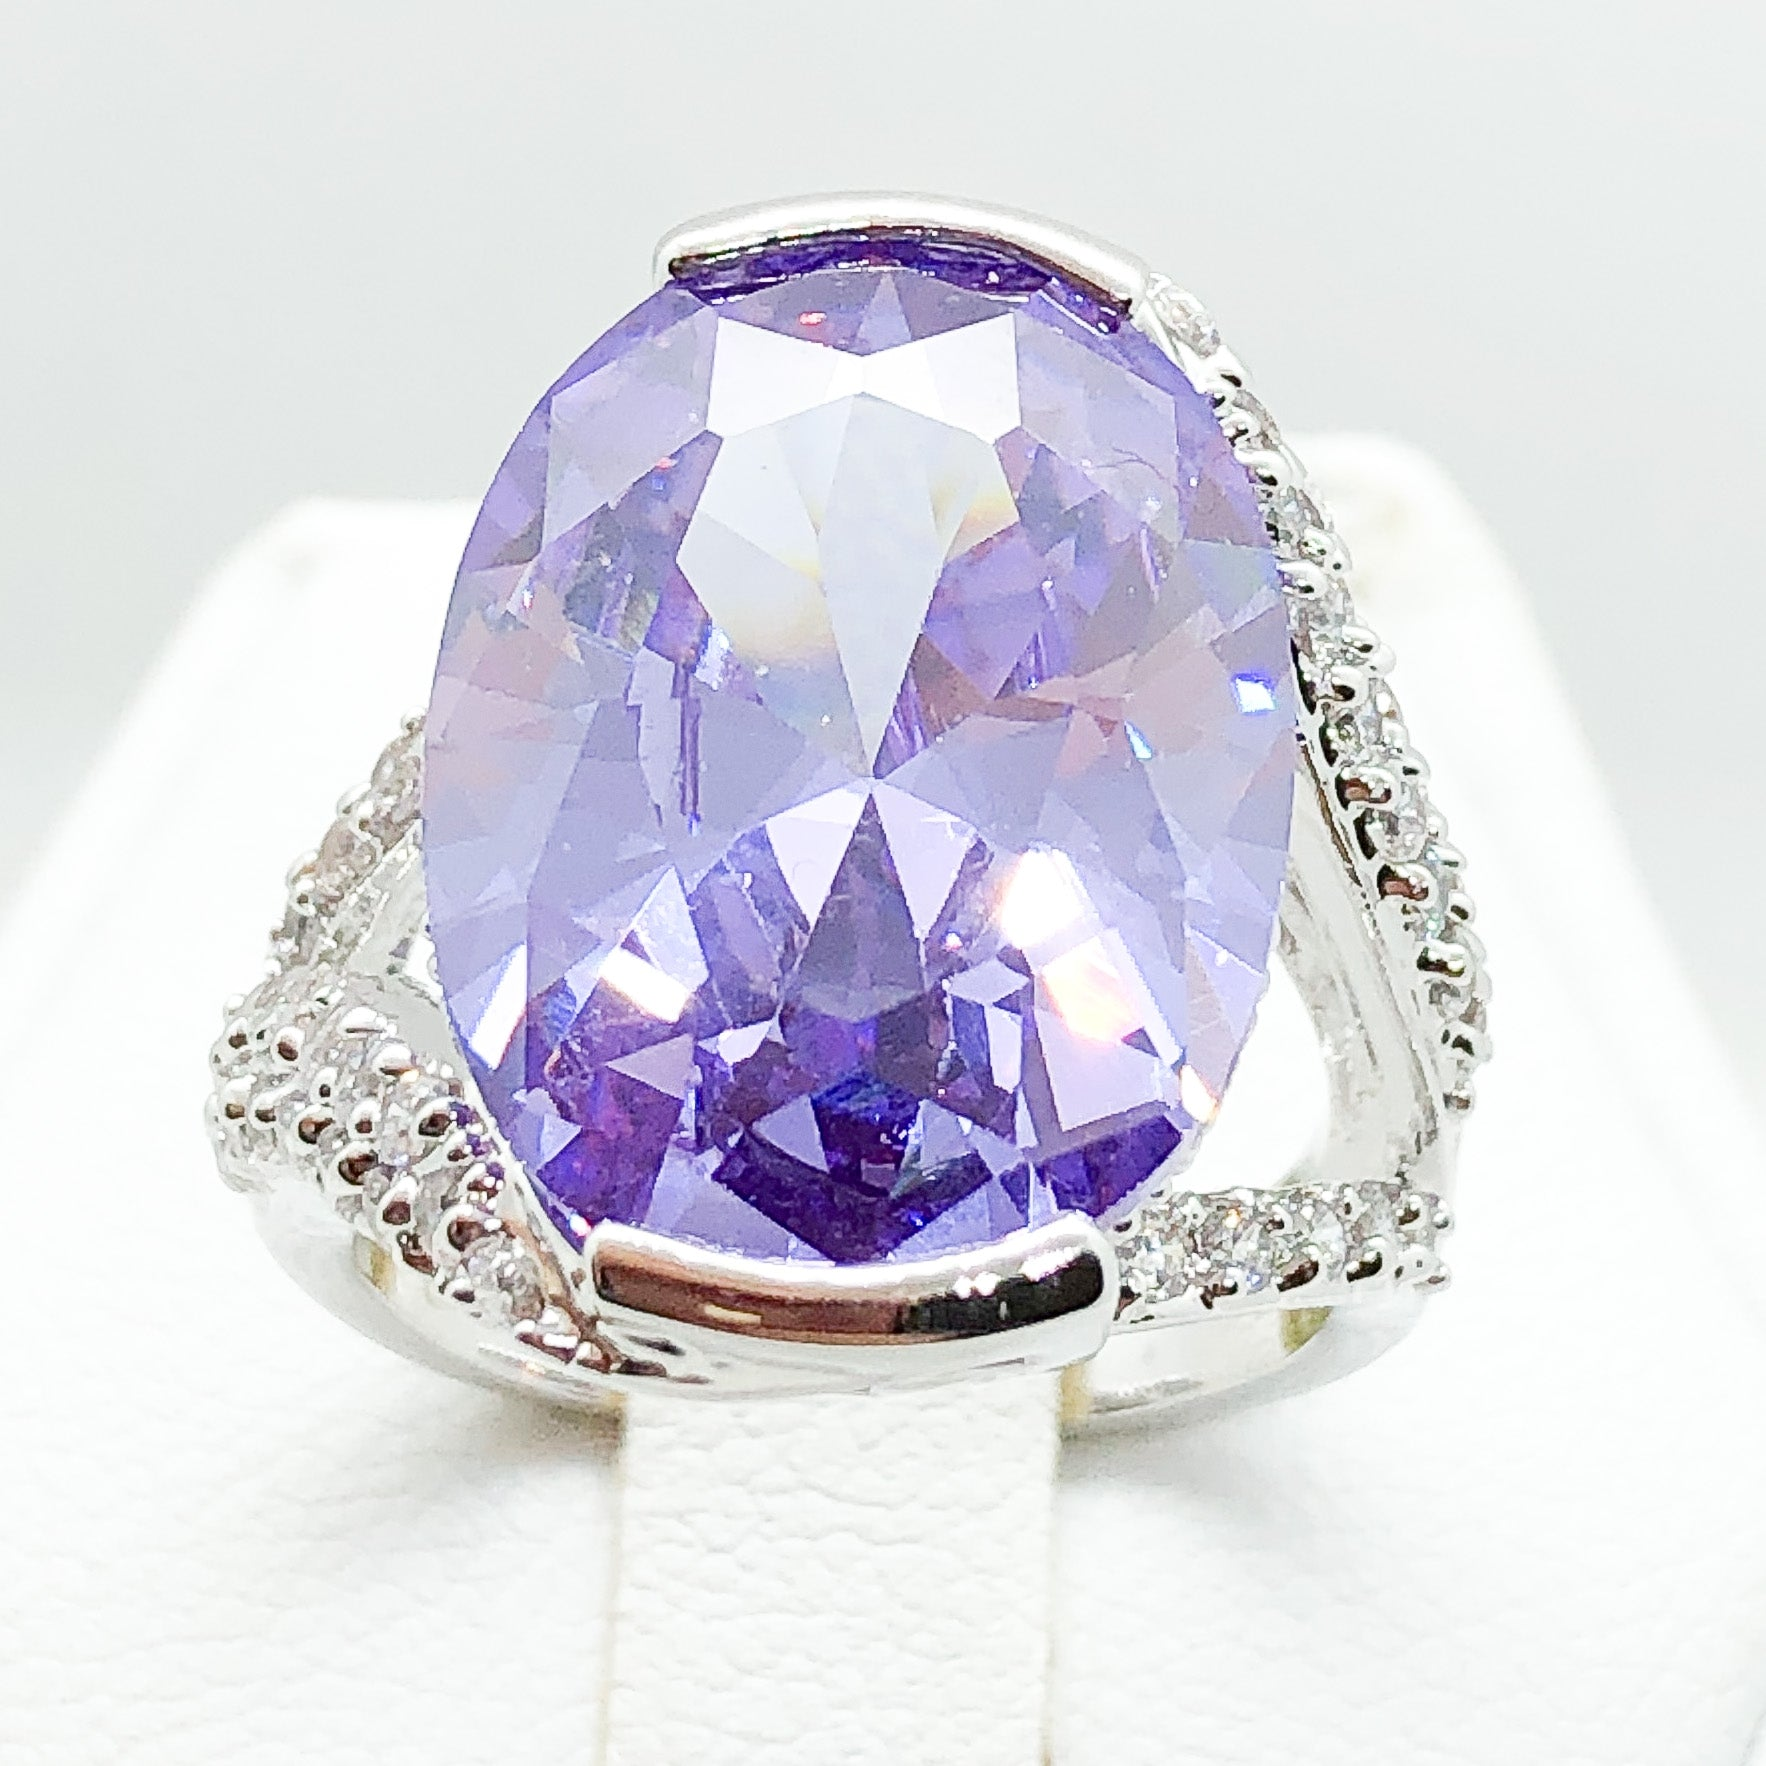 ID:R4601 Women 18K White Gold GF Fashion Jewelry Splendid Big Amethyst Center Gemstone With Accent Cocktail Ring